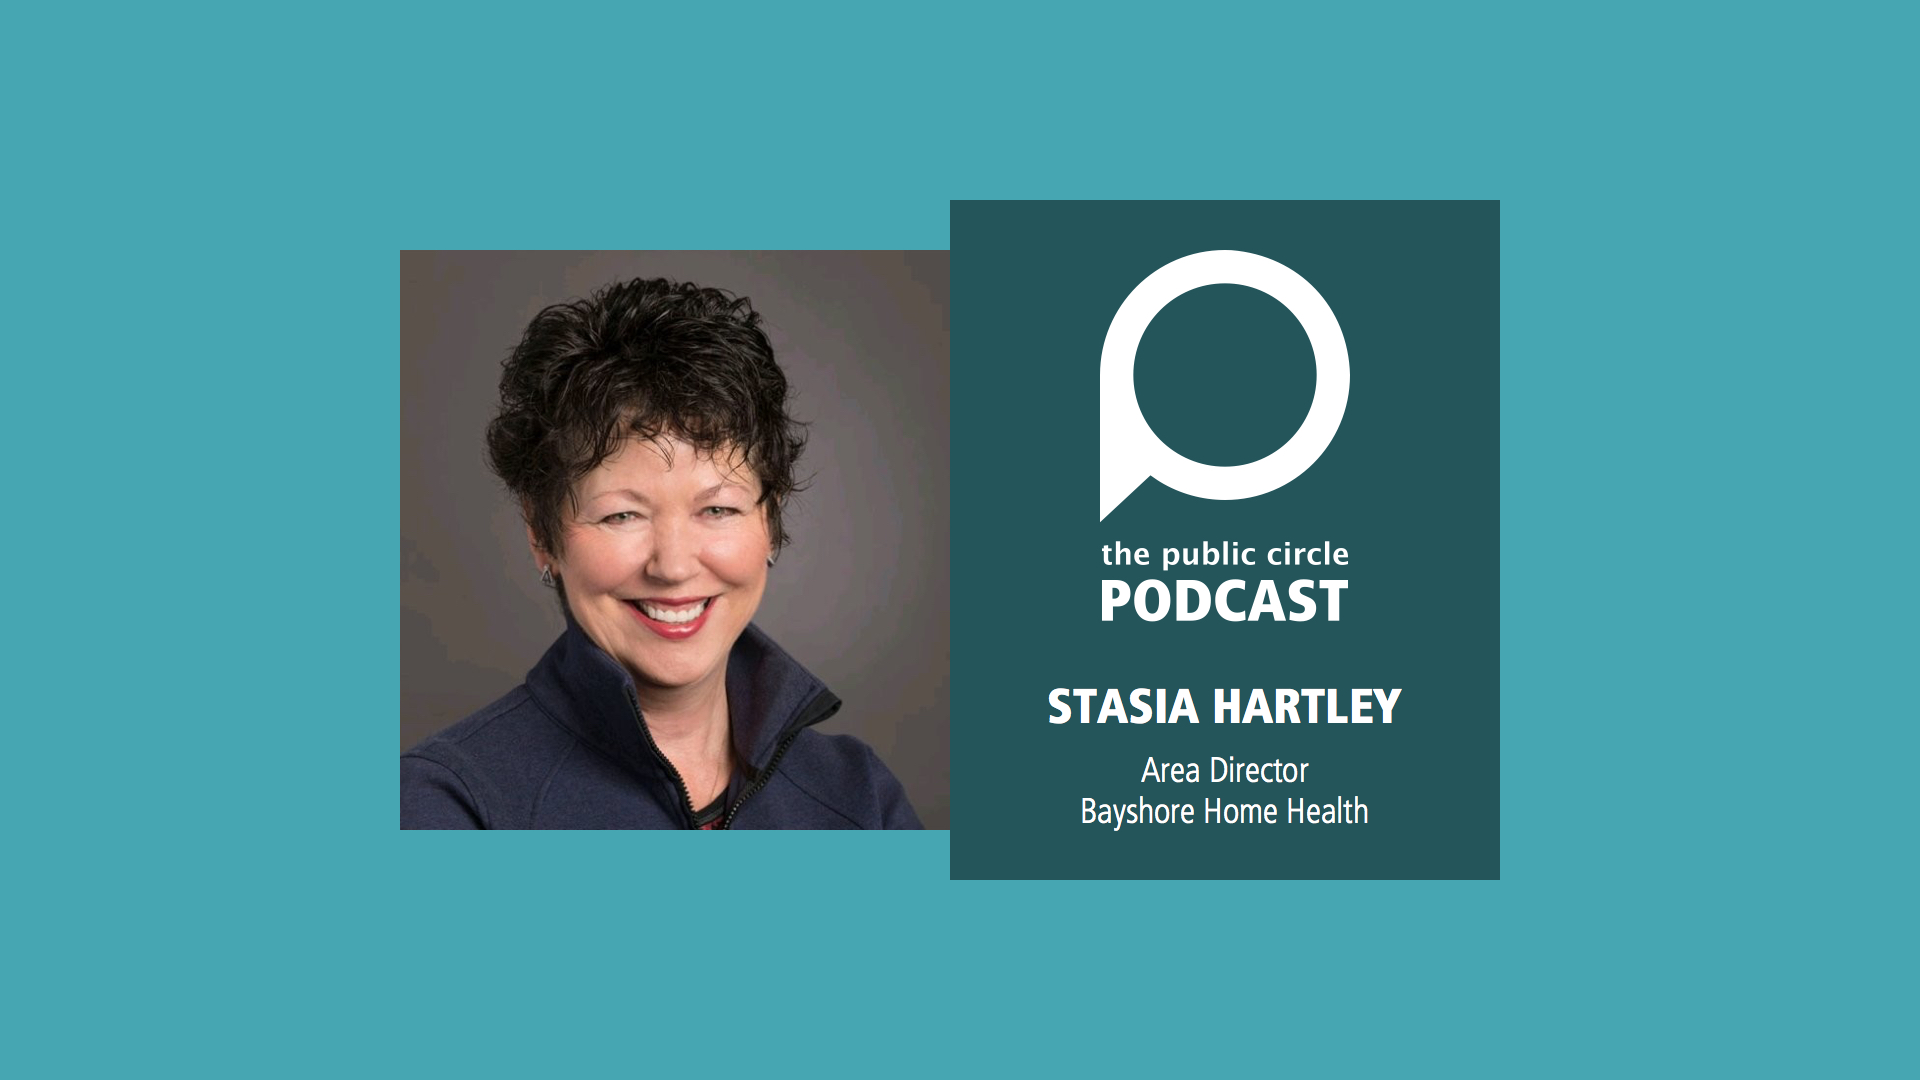 PODCAST: Stasia Hartley, Area Director for Bayshore Home Health